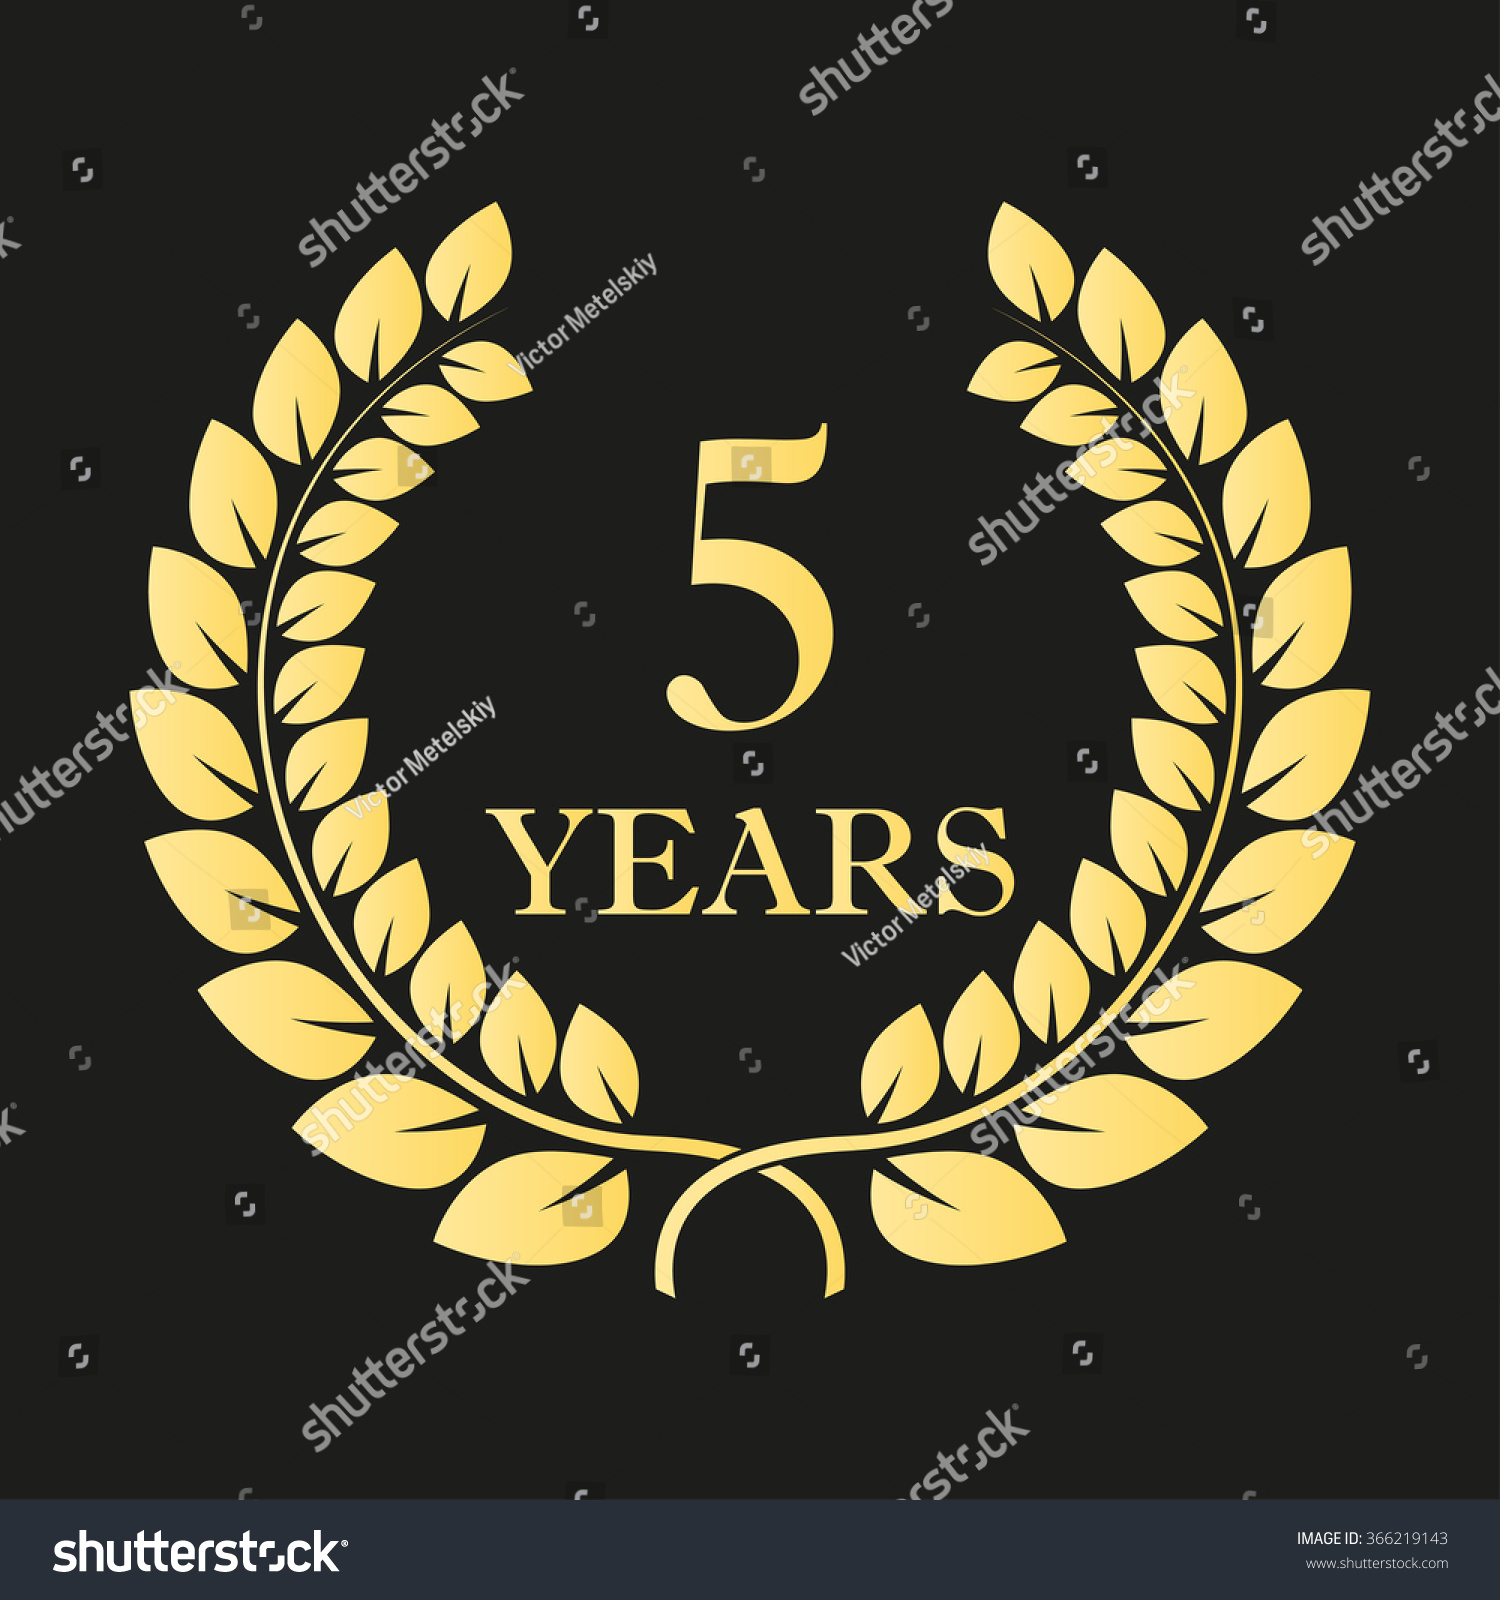 5 years anniversary laurel wreath icon stock illustration 5 years anniversary laurel wreath icon or sign template for celebration and congratulation design biocorpaavc Gallery